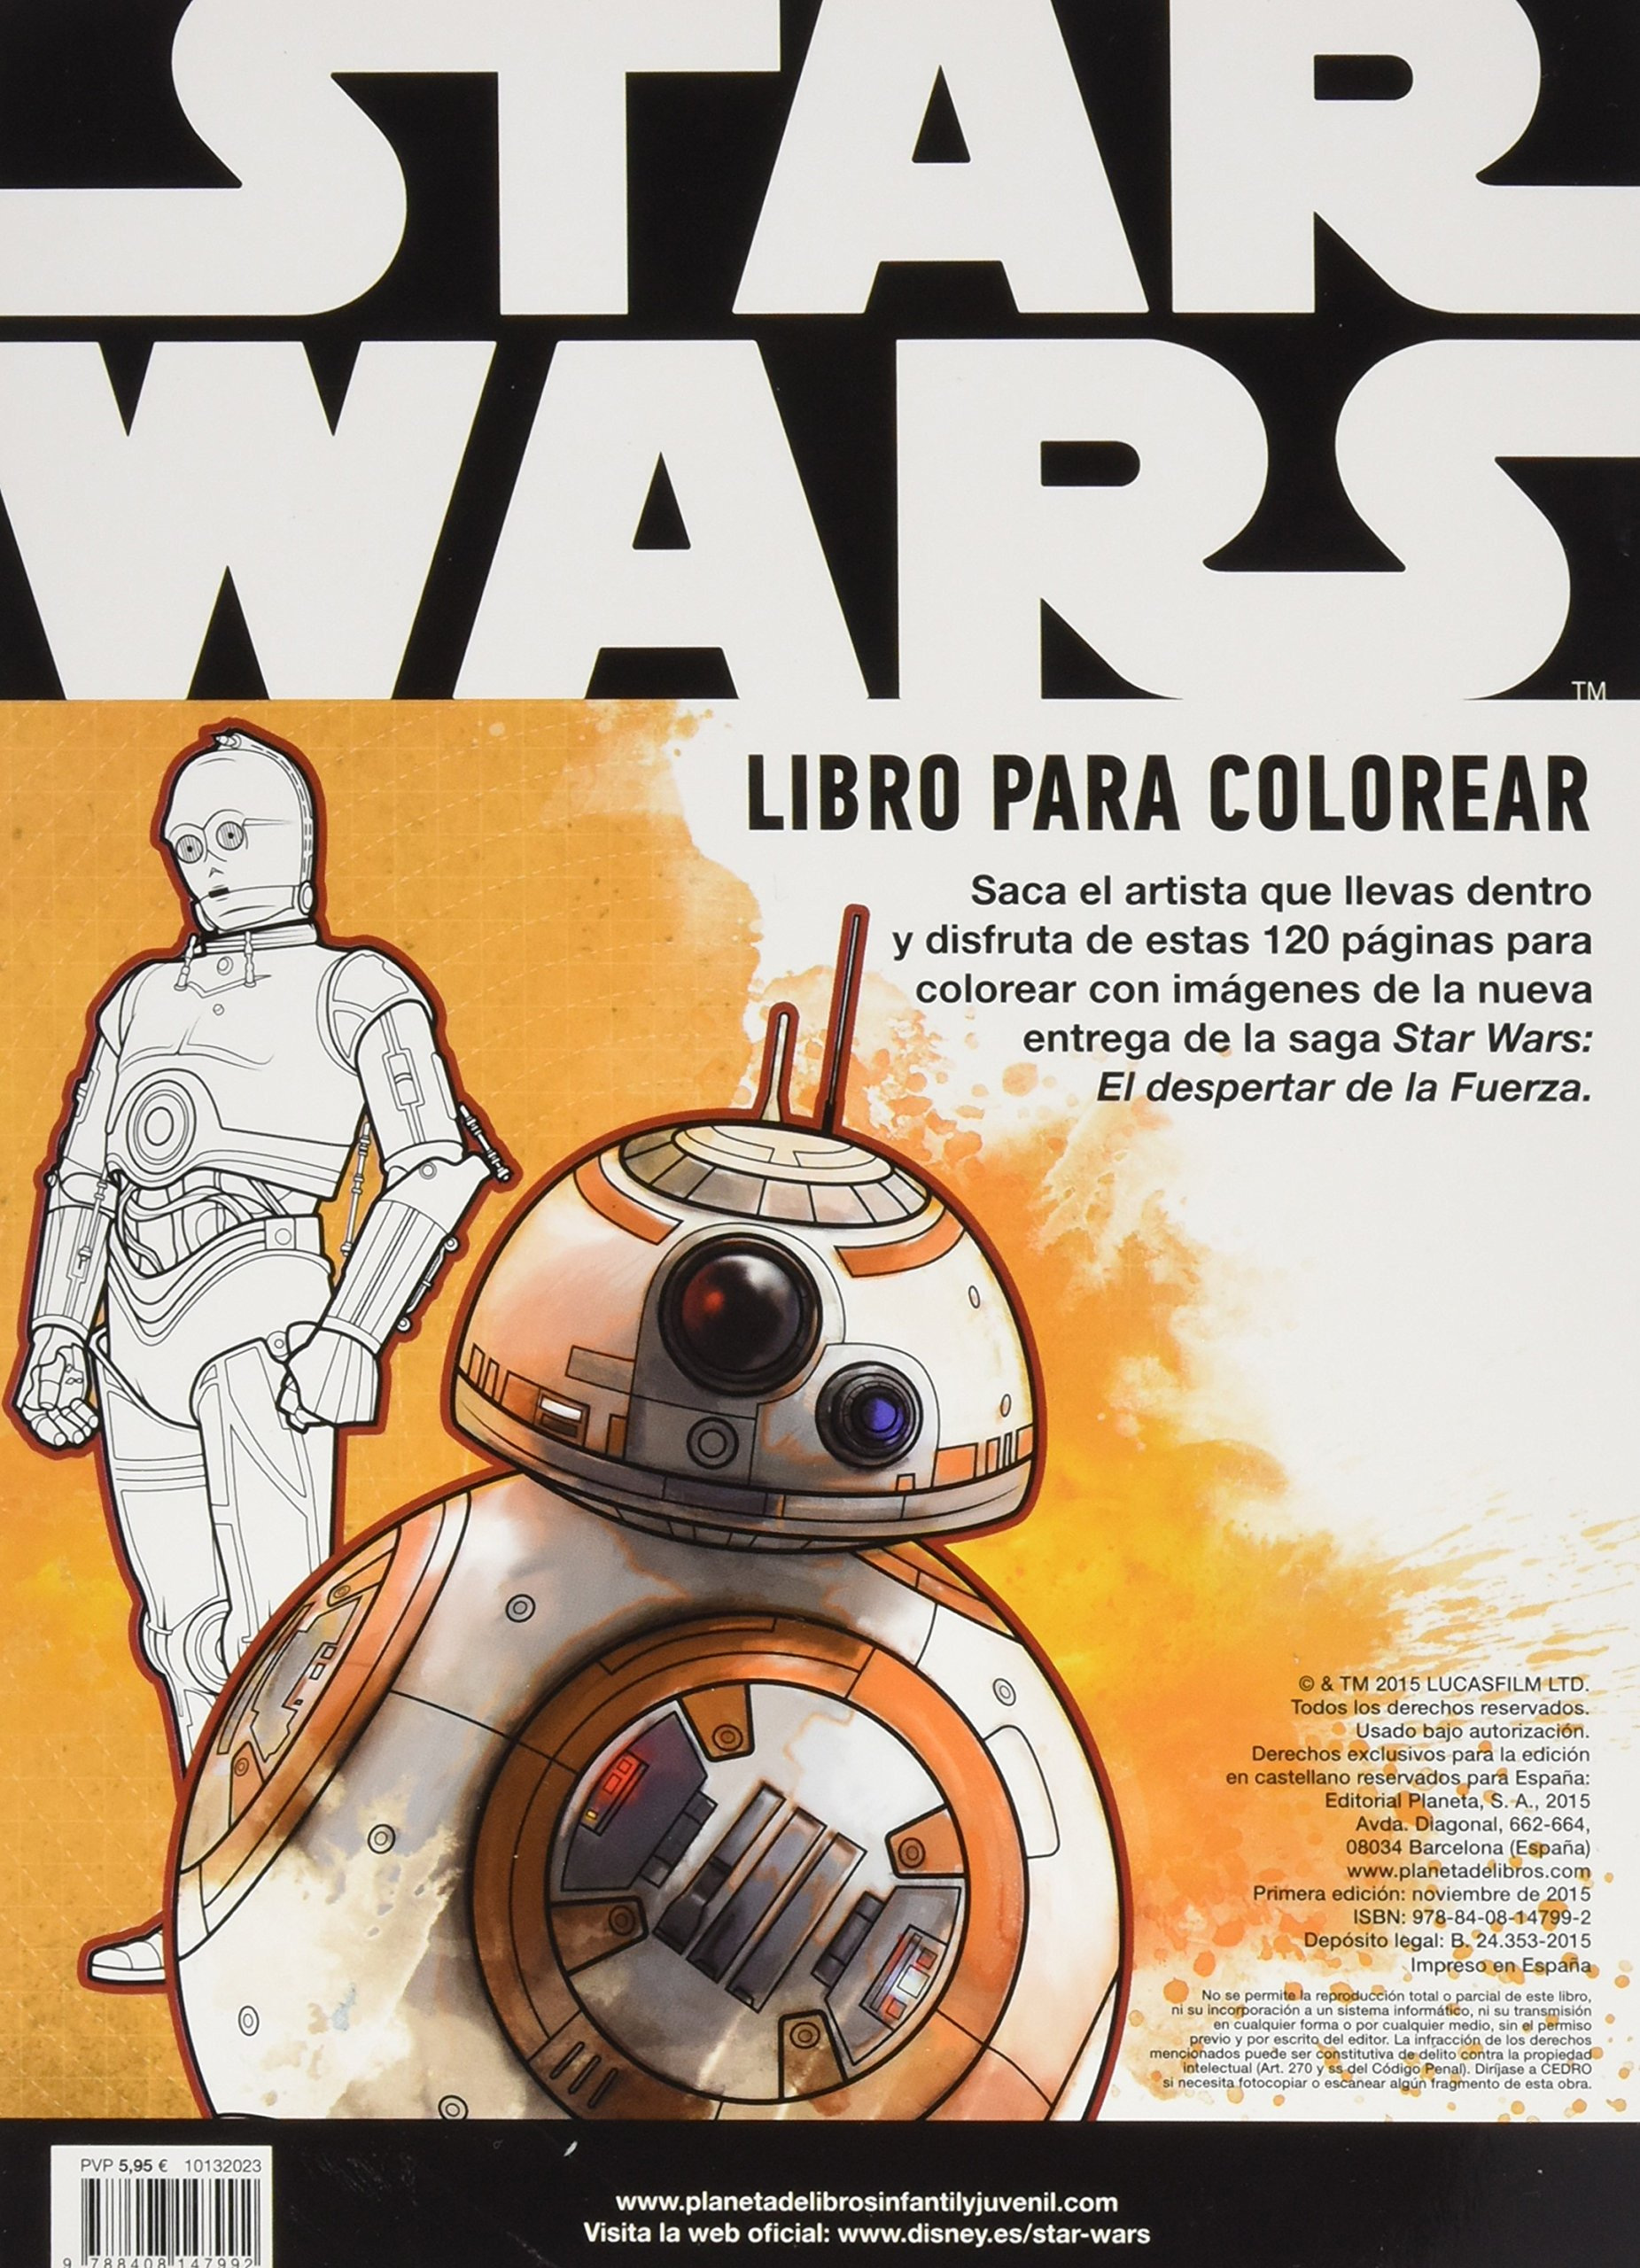 Star Wars. Libro para colorear: El despertar de la Fuerza: Amazon.es ...